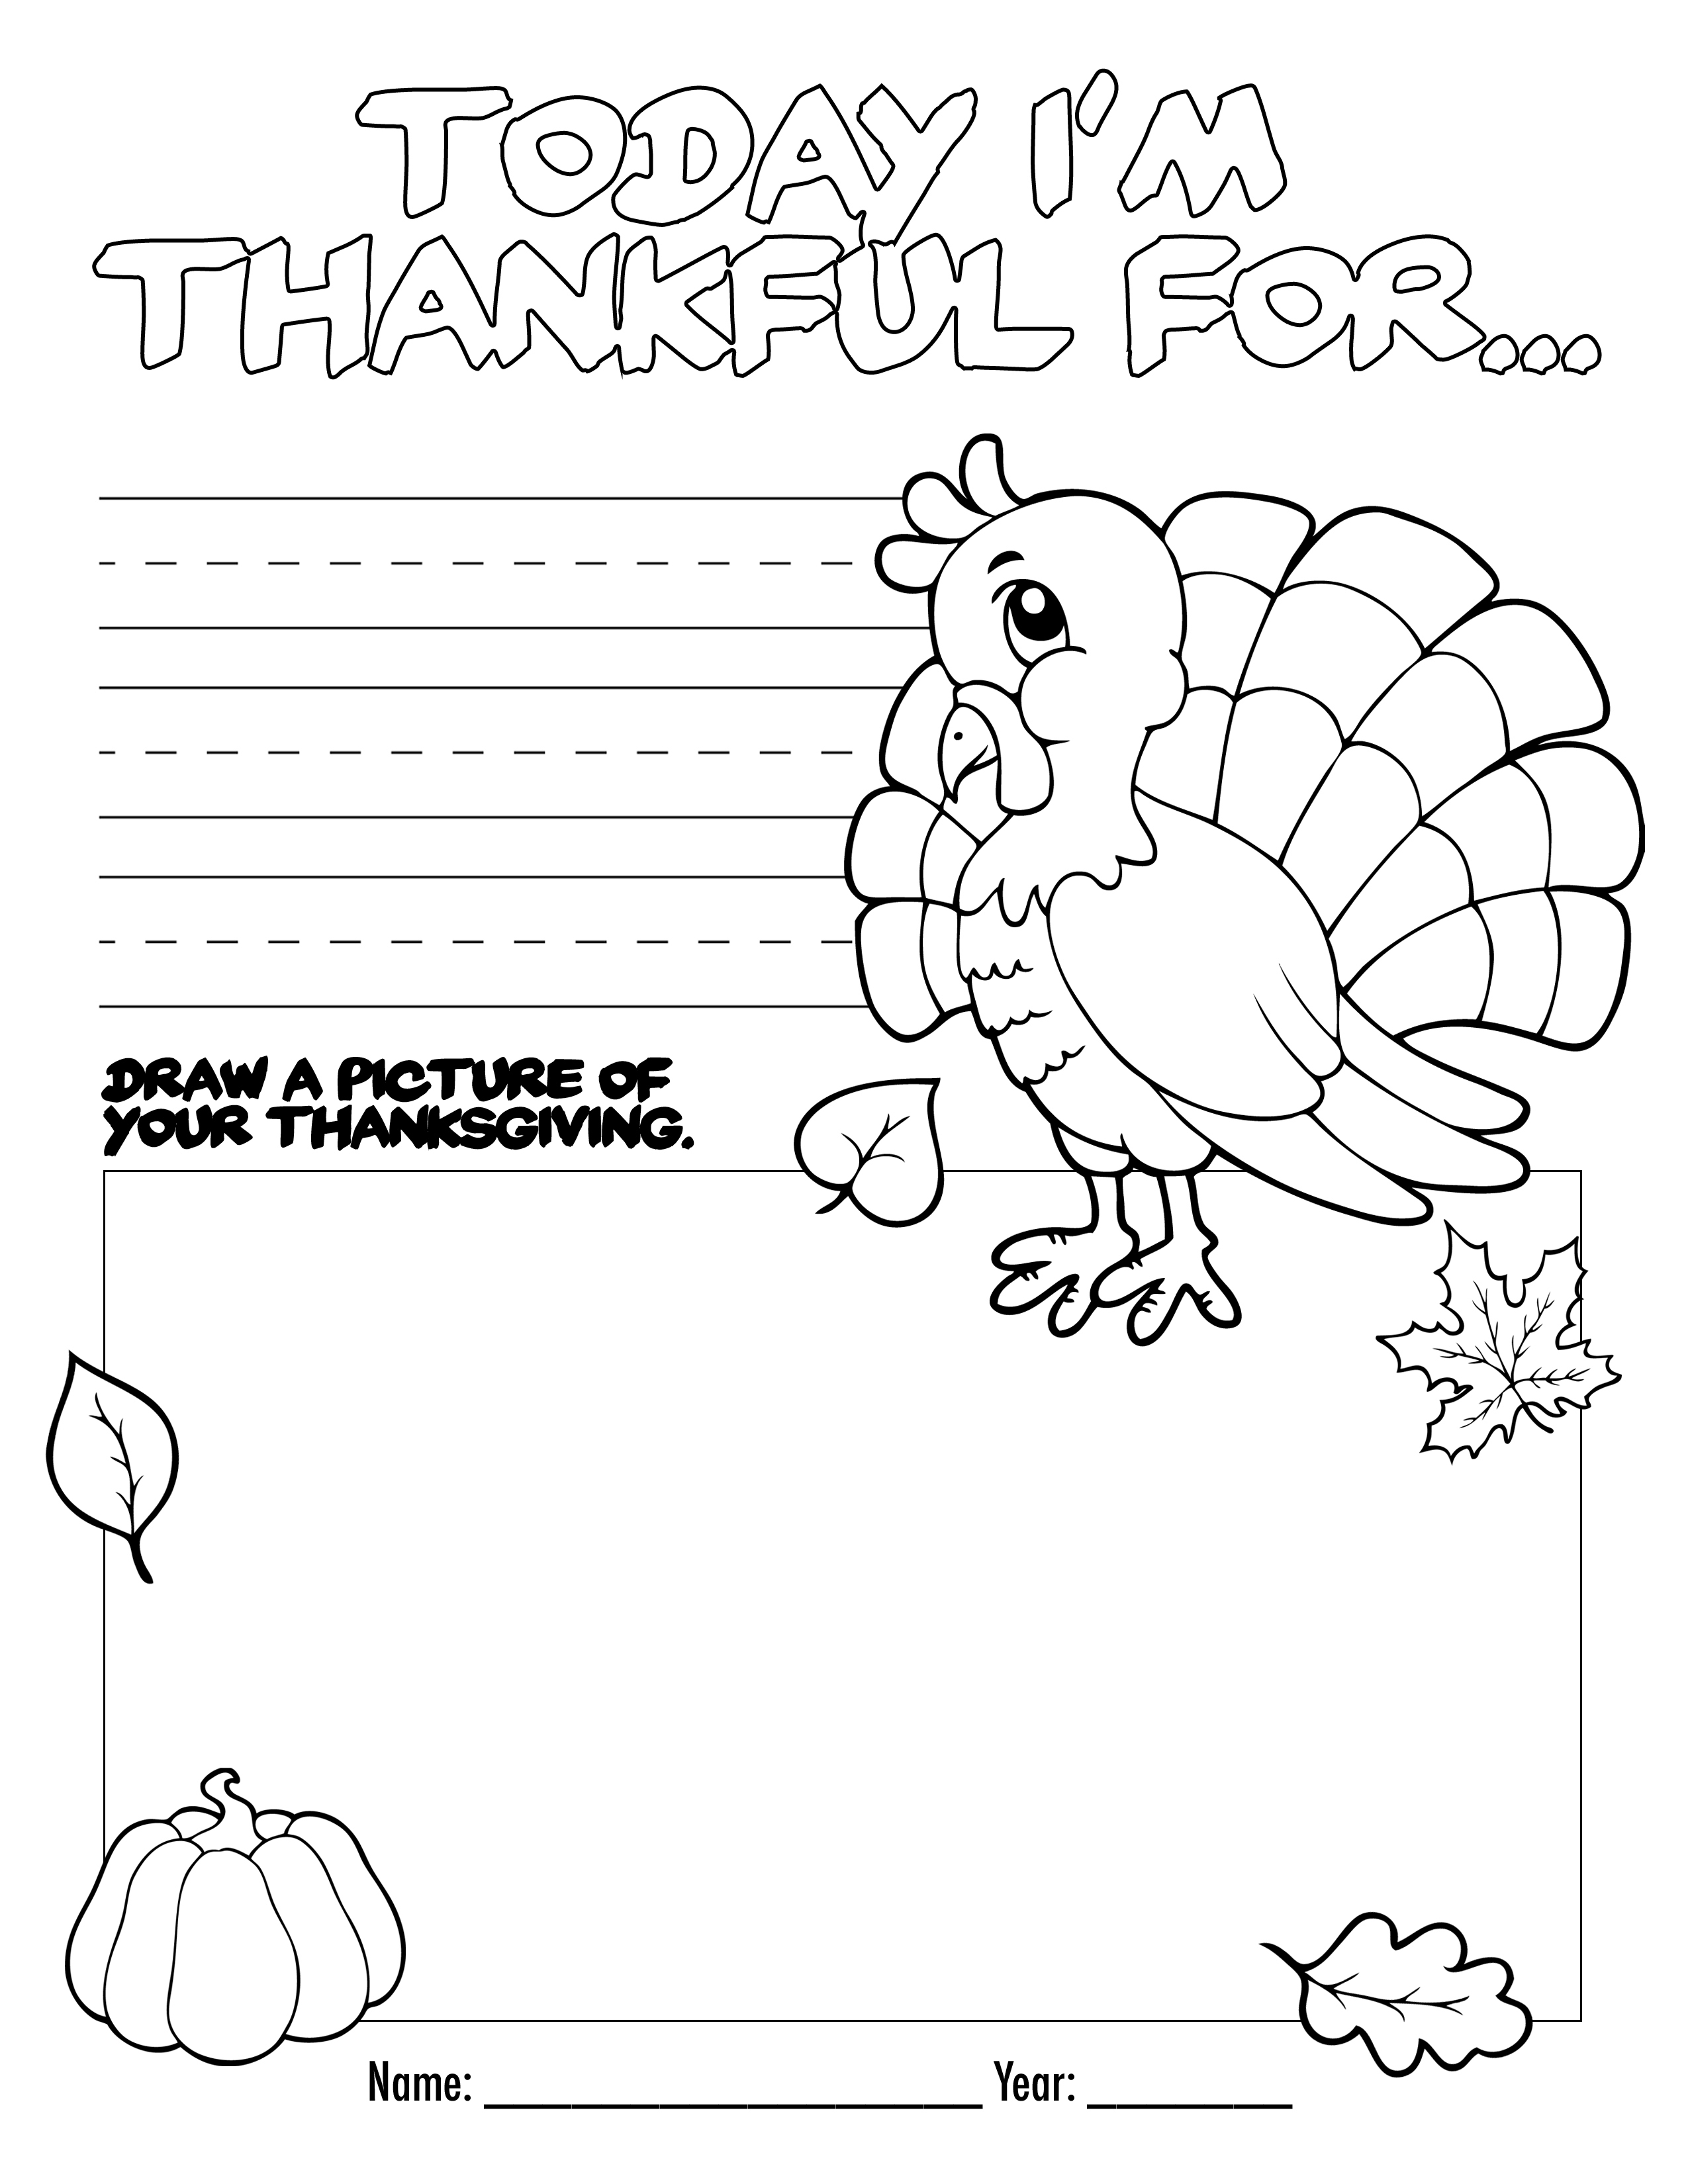 Thanksgiving Coloring Book Free Printable For The Kids! - Free | Free Printable Preschool Thanksgiving Worksheets